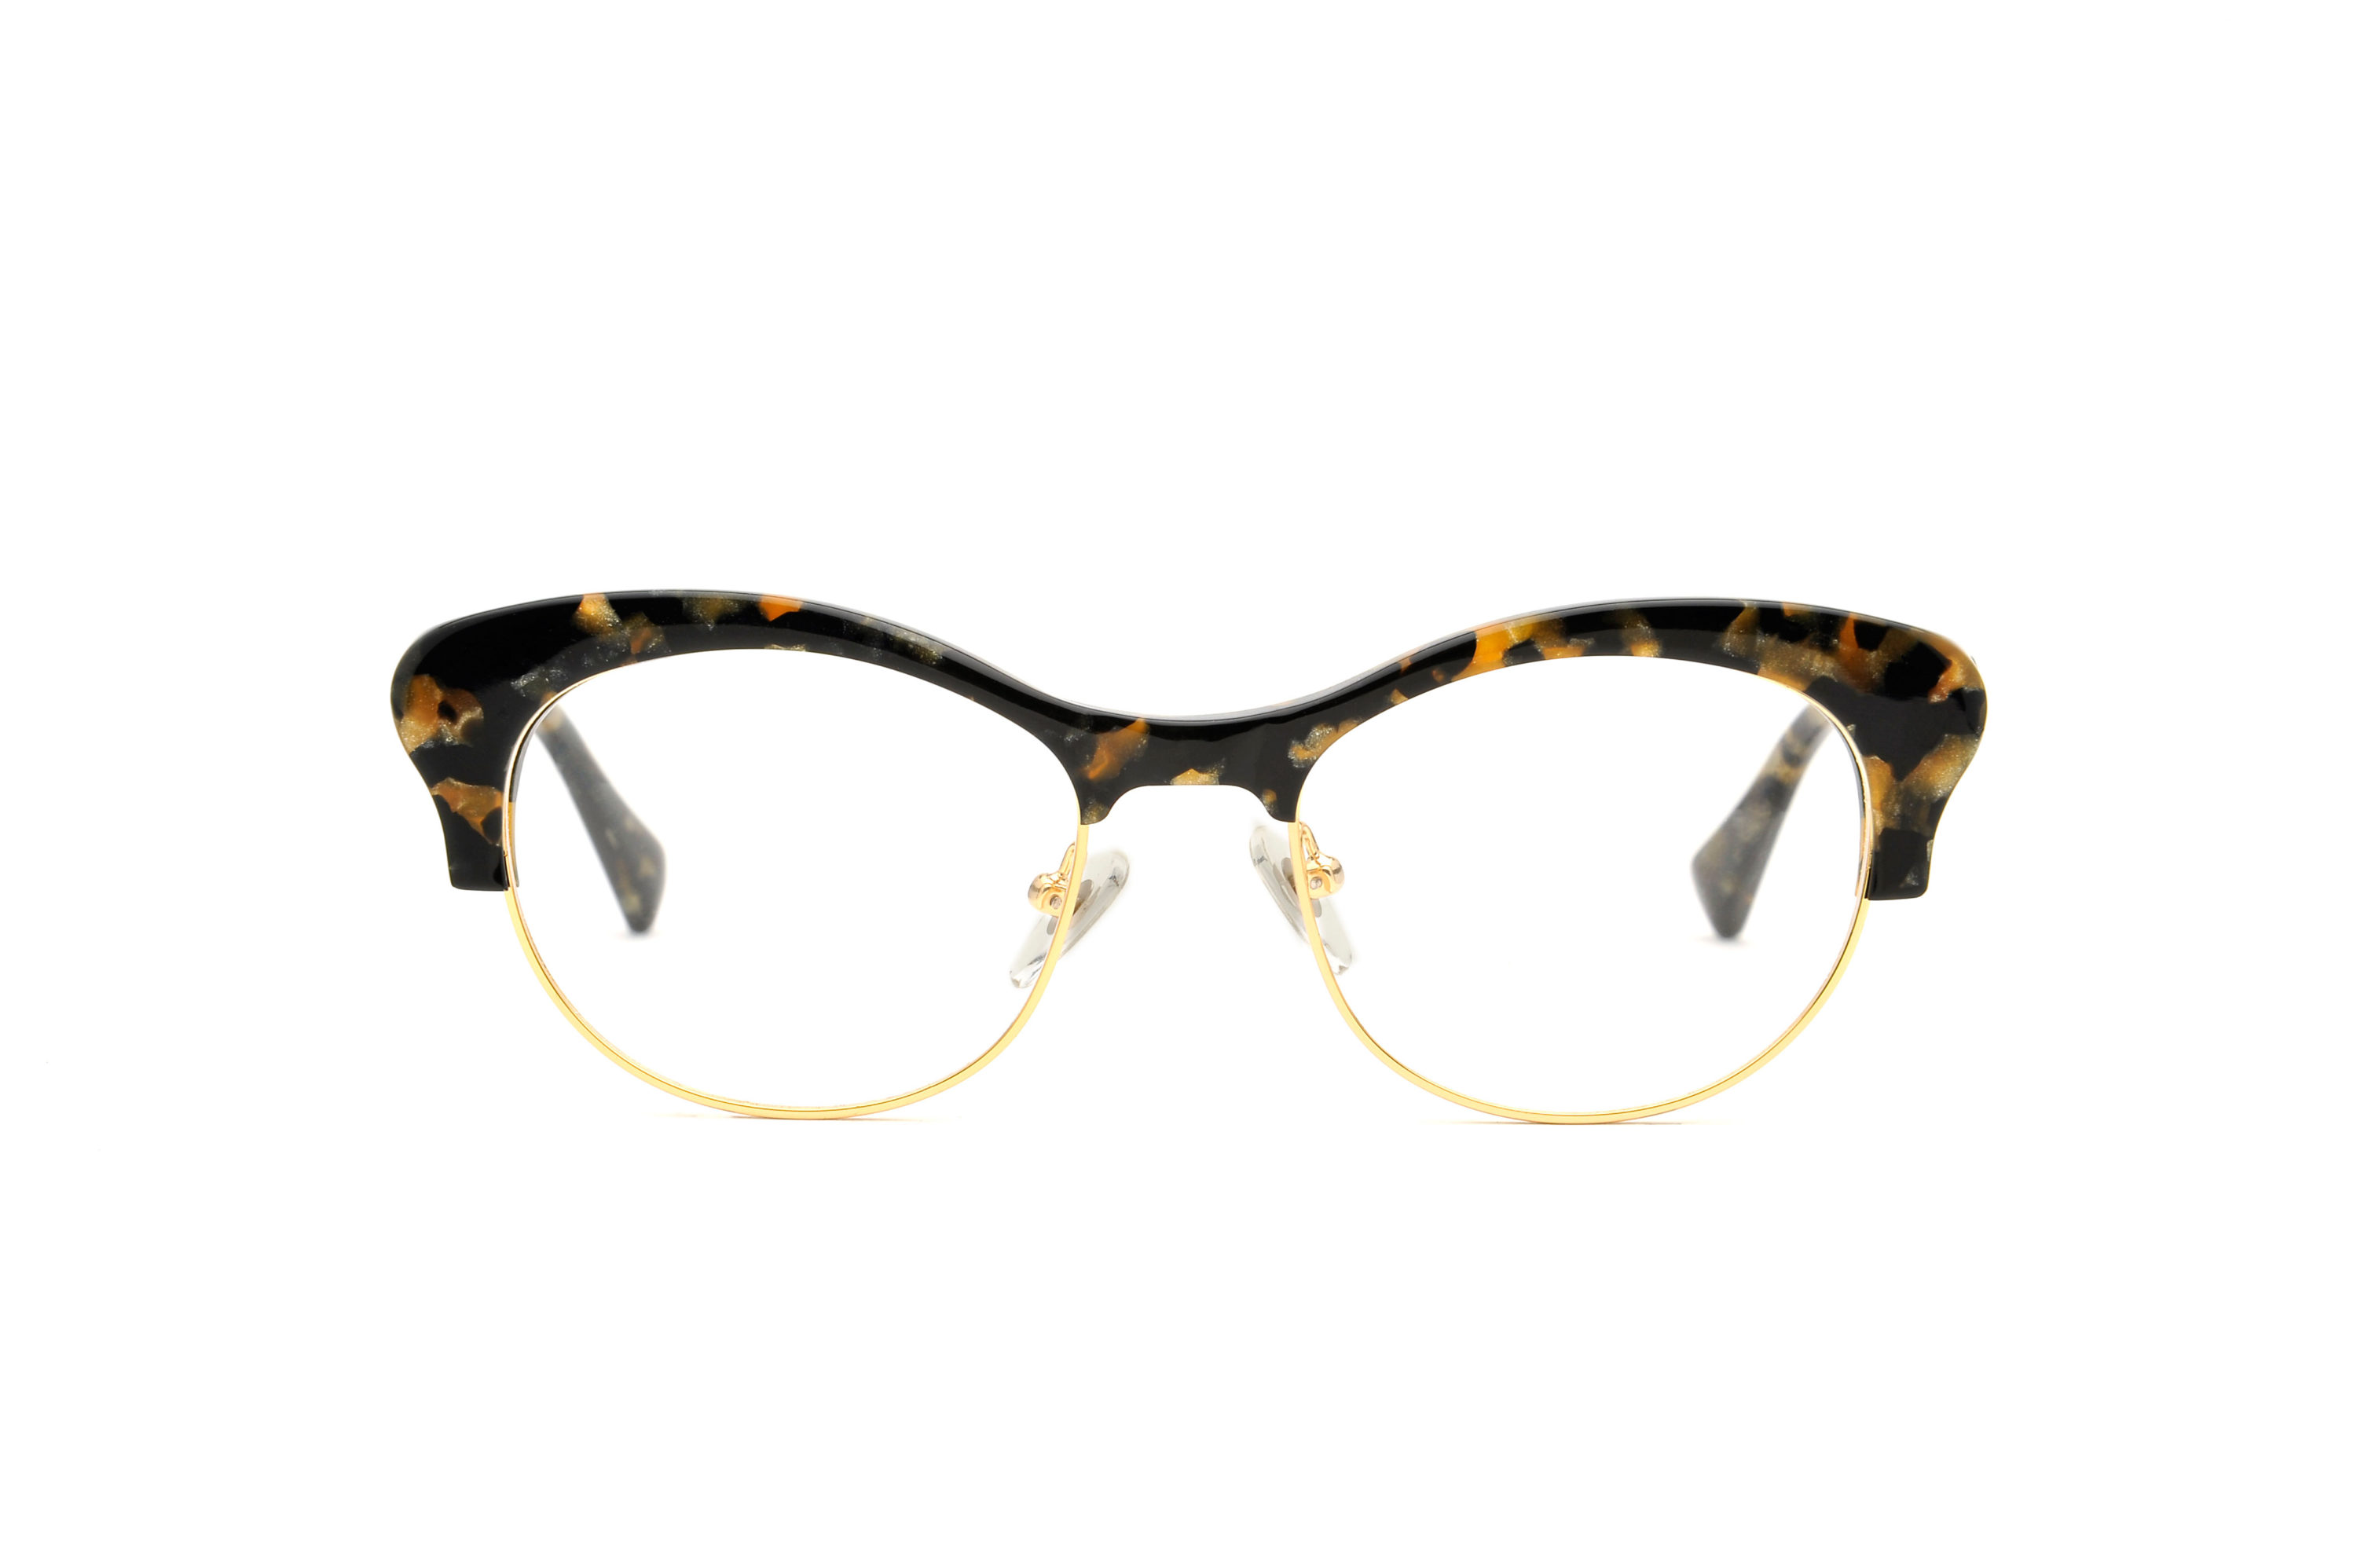 Orchid acetate/metal cat eye tortoise sunglasses by GIGI Studios